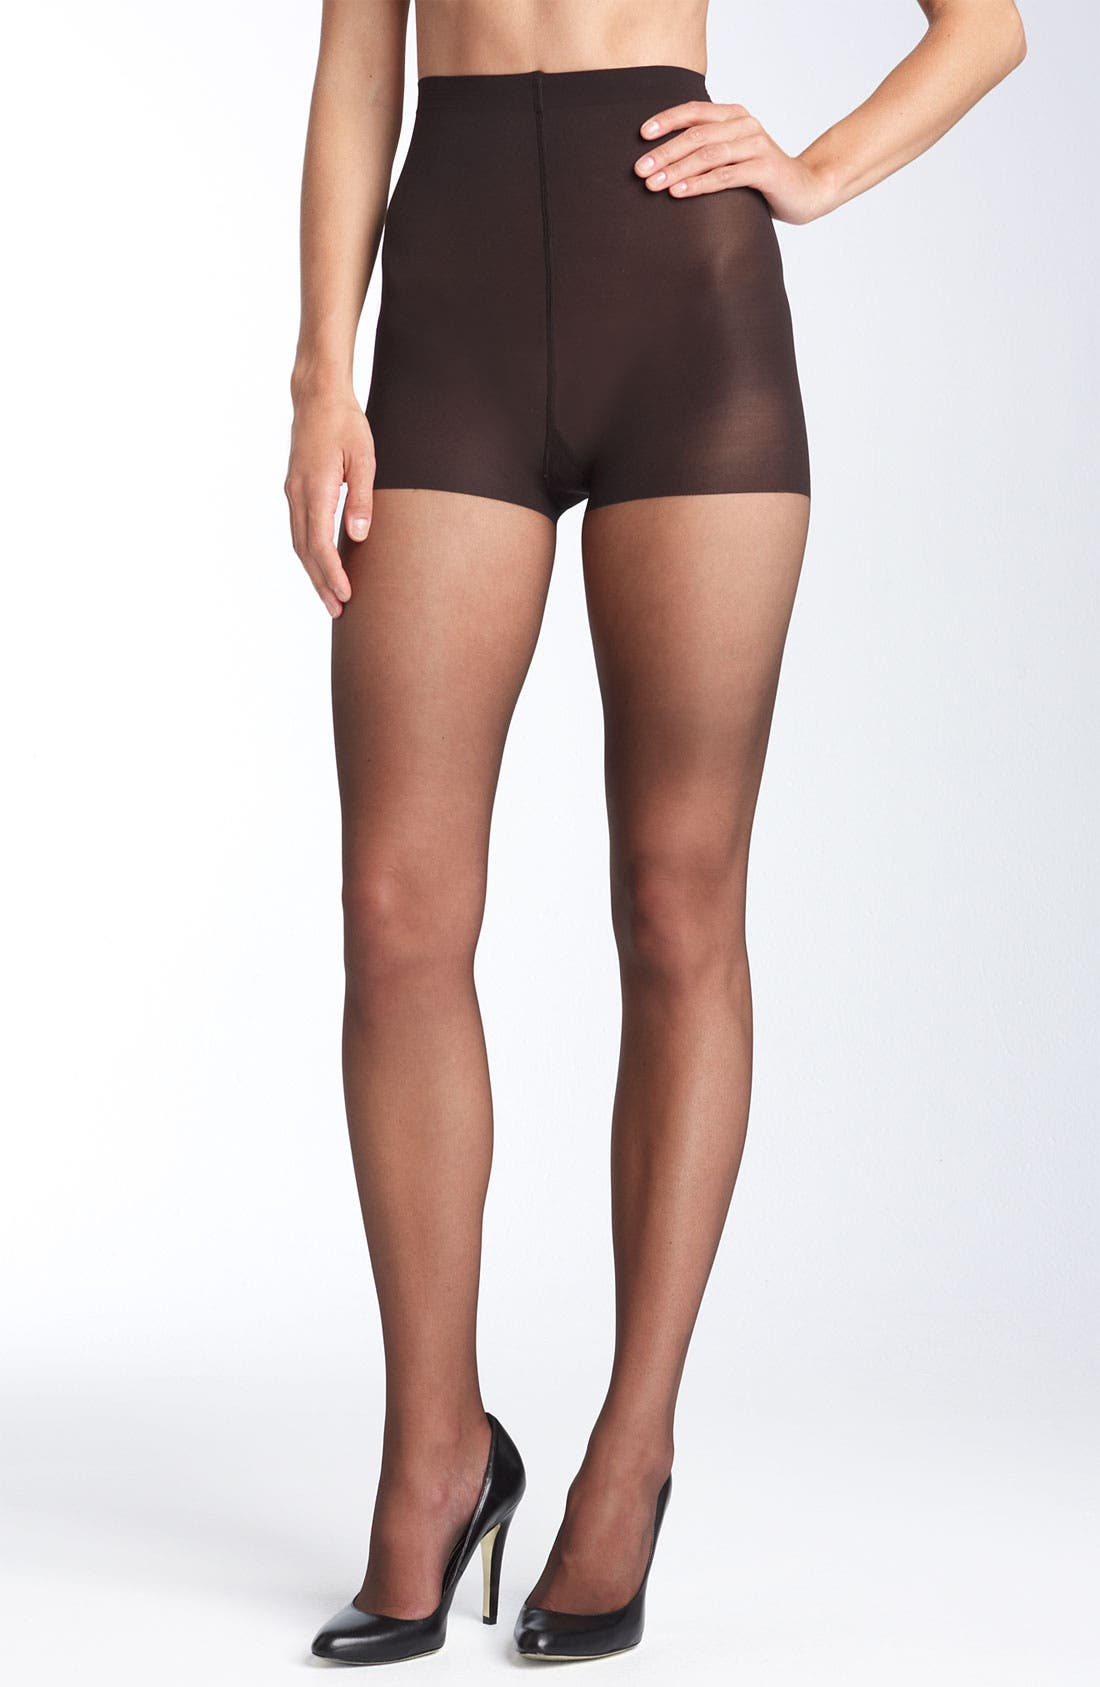 Main Image - Donna Karan 'Ultra Sheer' Control Top Pantyhose